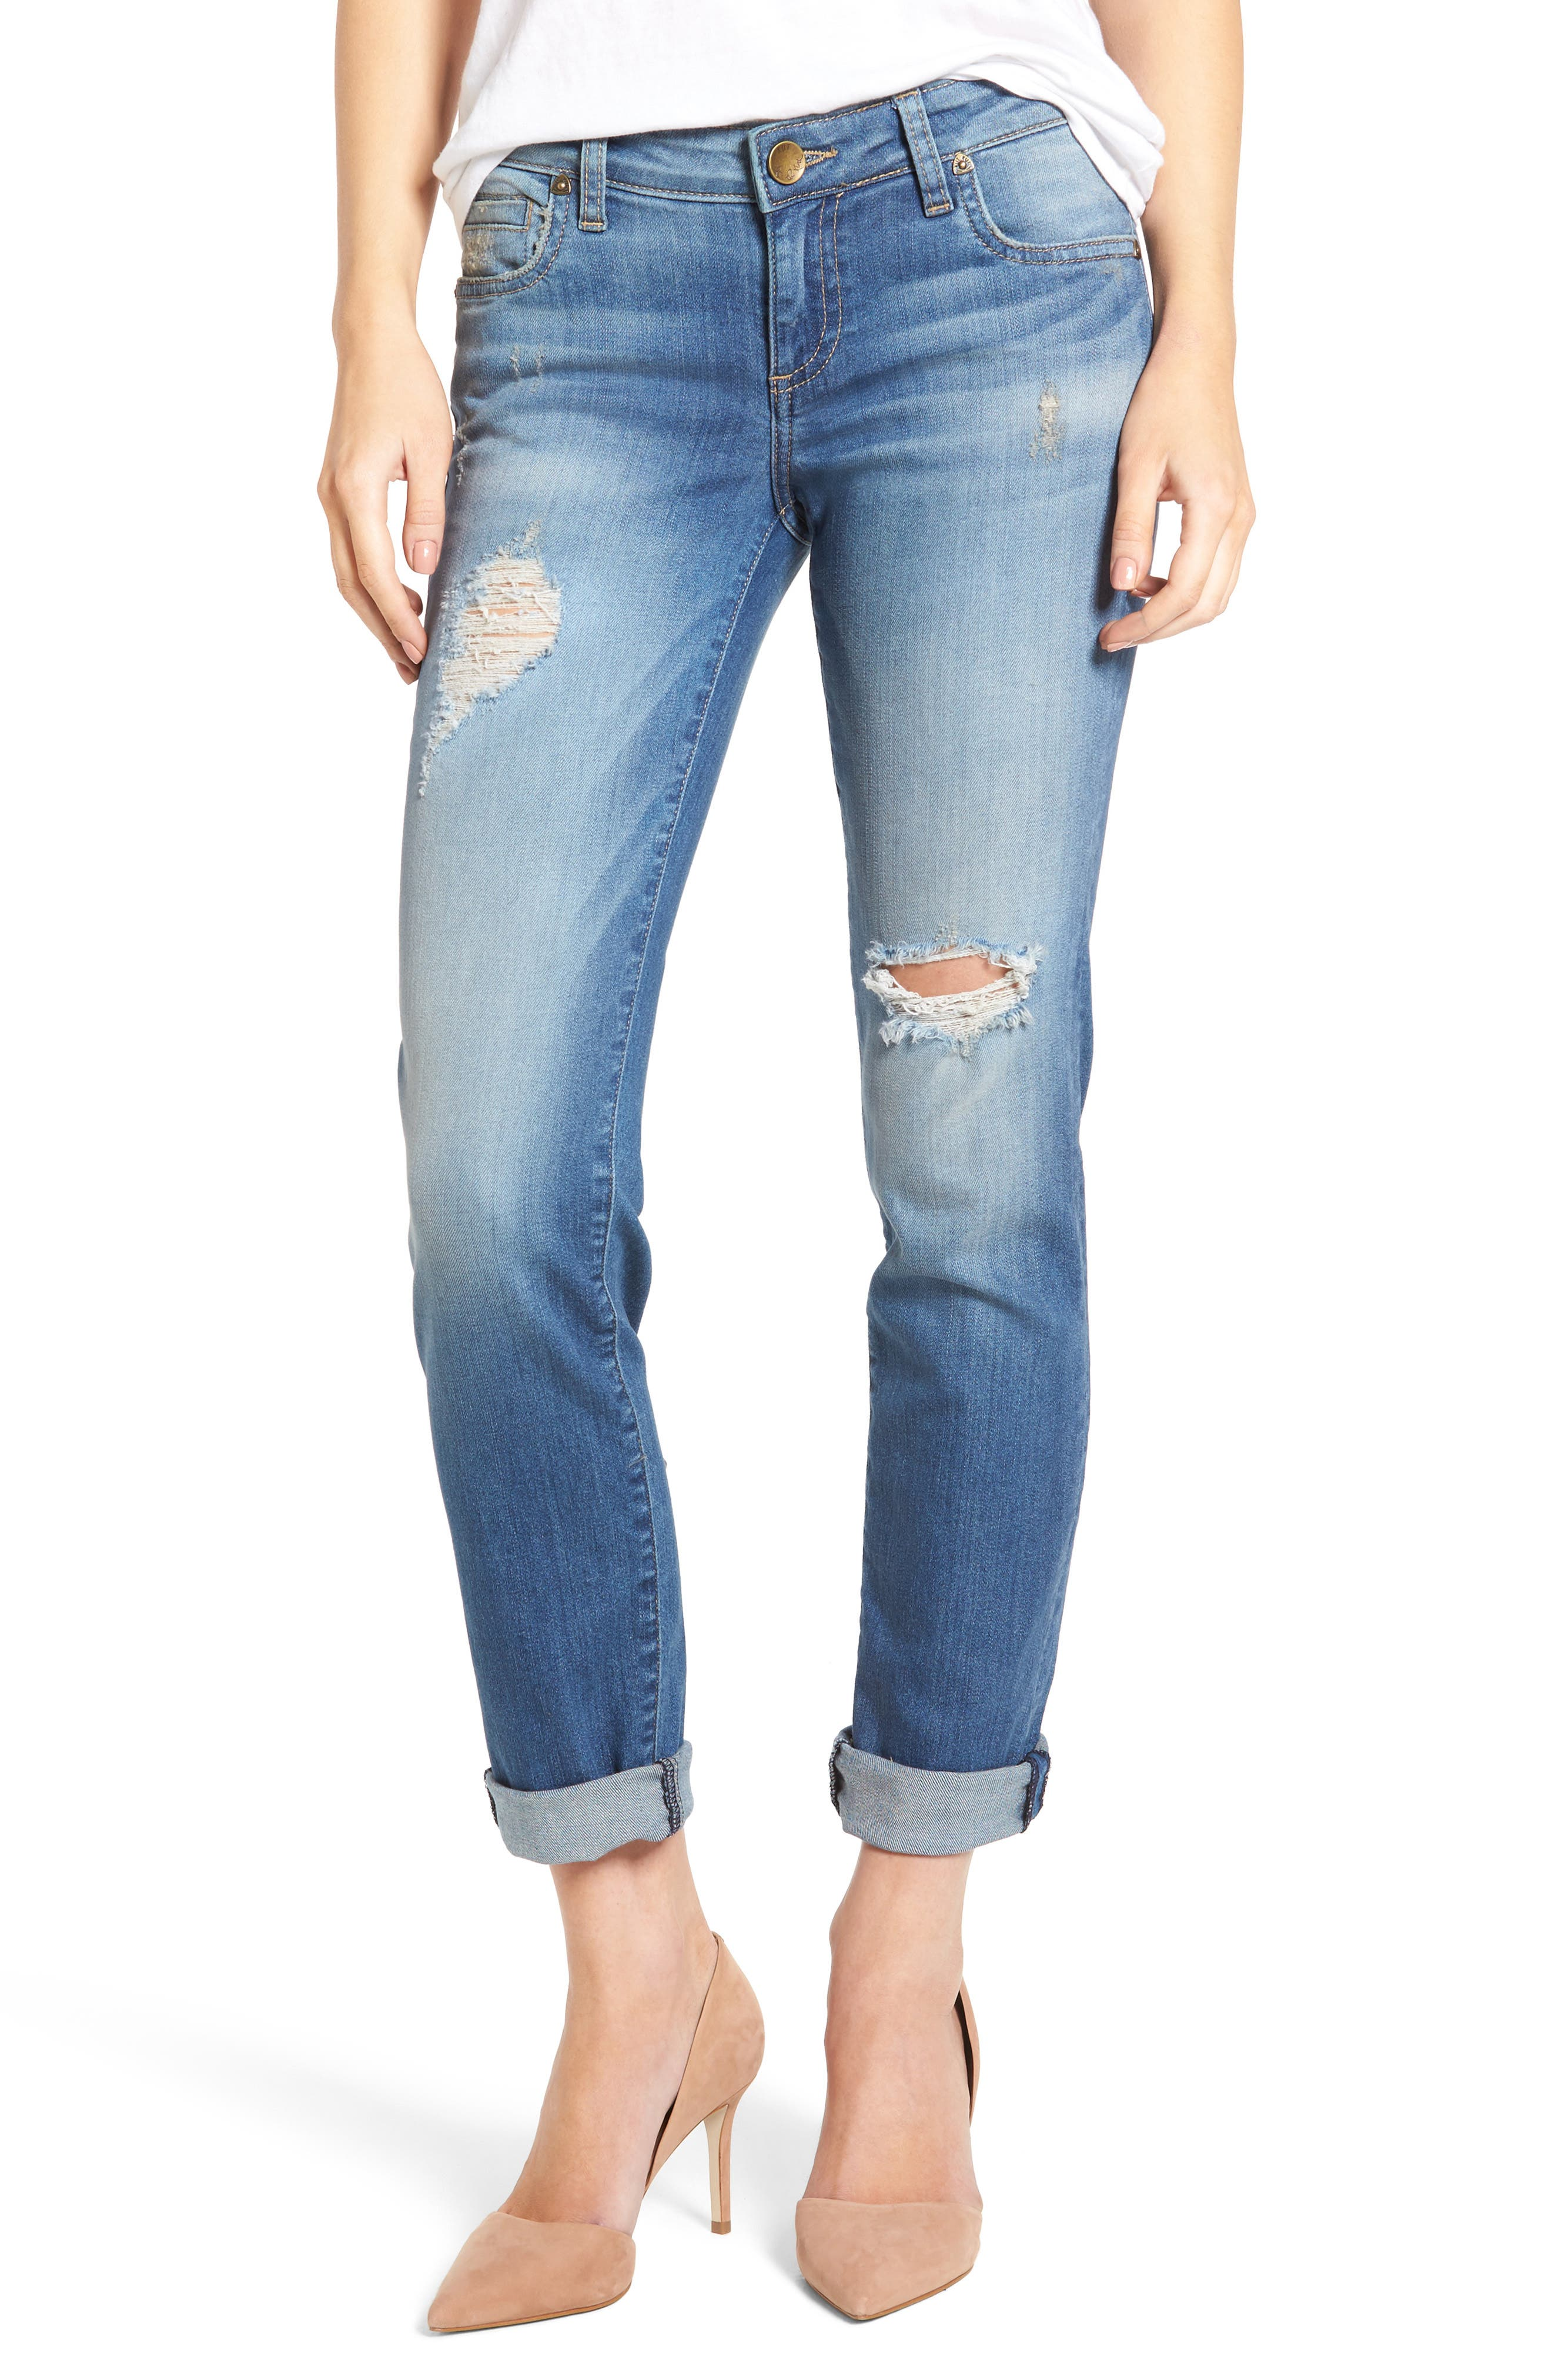 Destroyed Jeans & Denim for Women: Skinny, Boyfriend & More ...